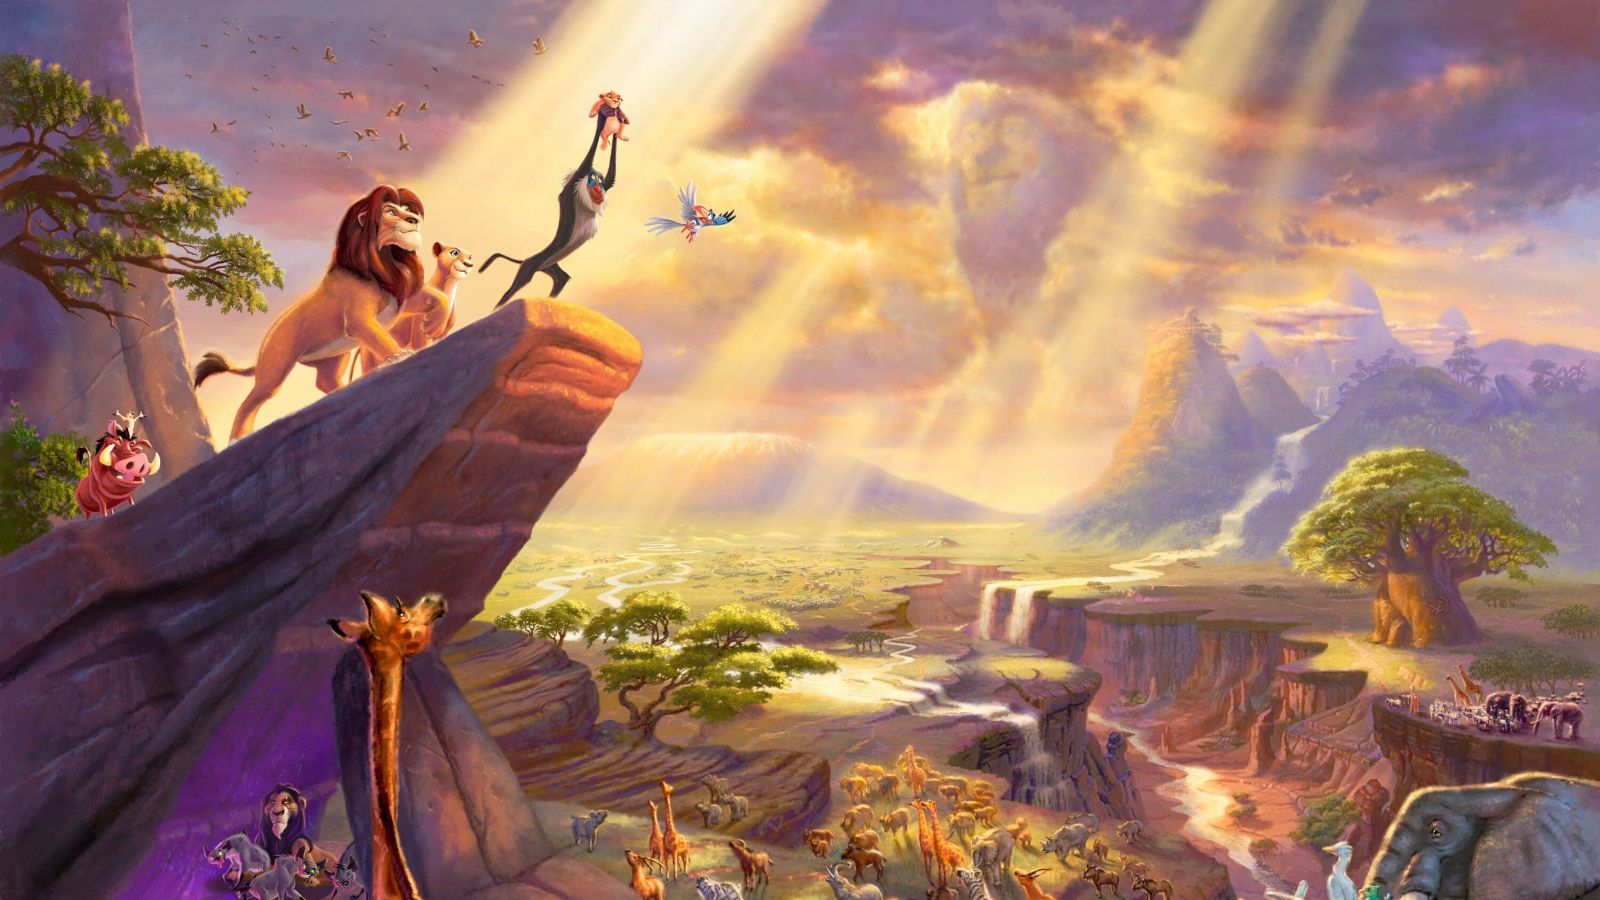 1600x900 Disney images The Circle of Life HD wallpaper and background photos ...